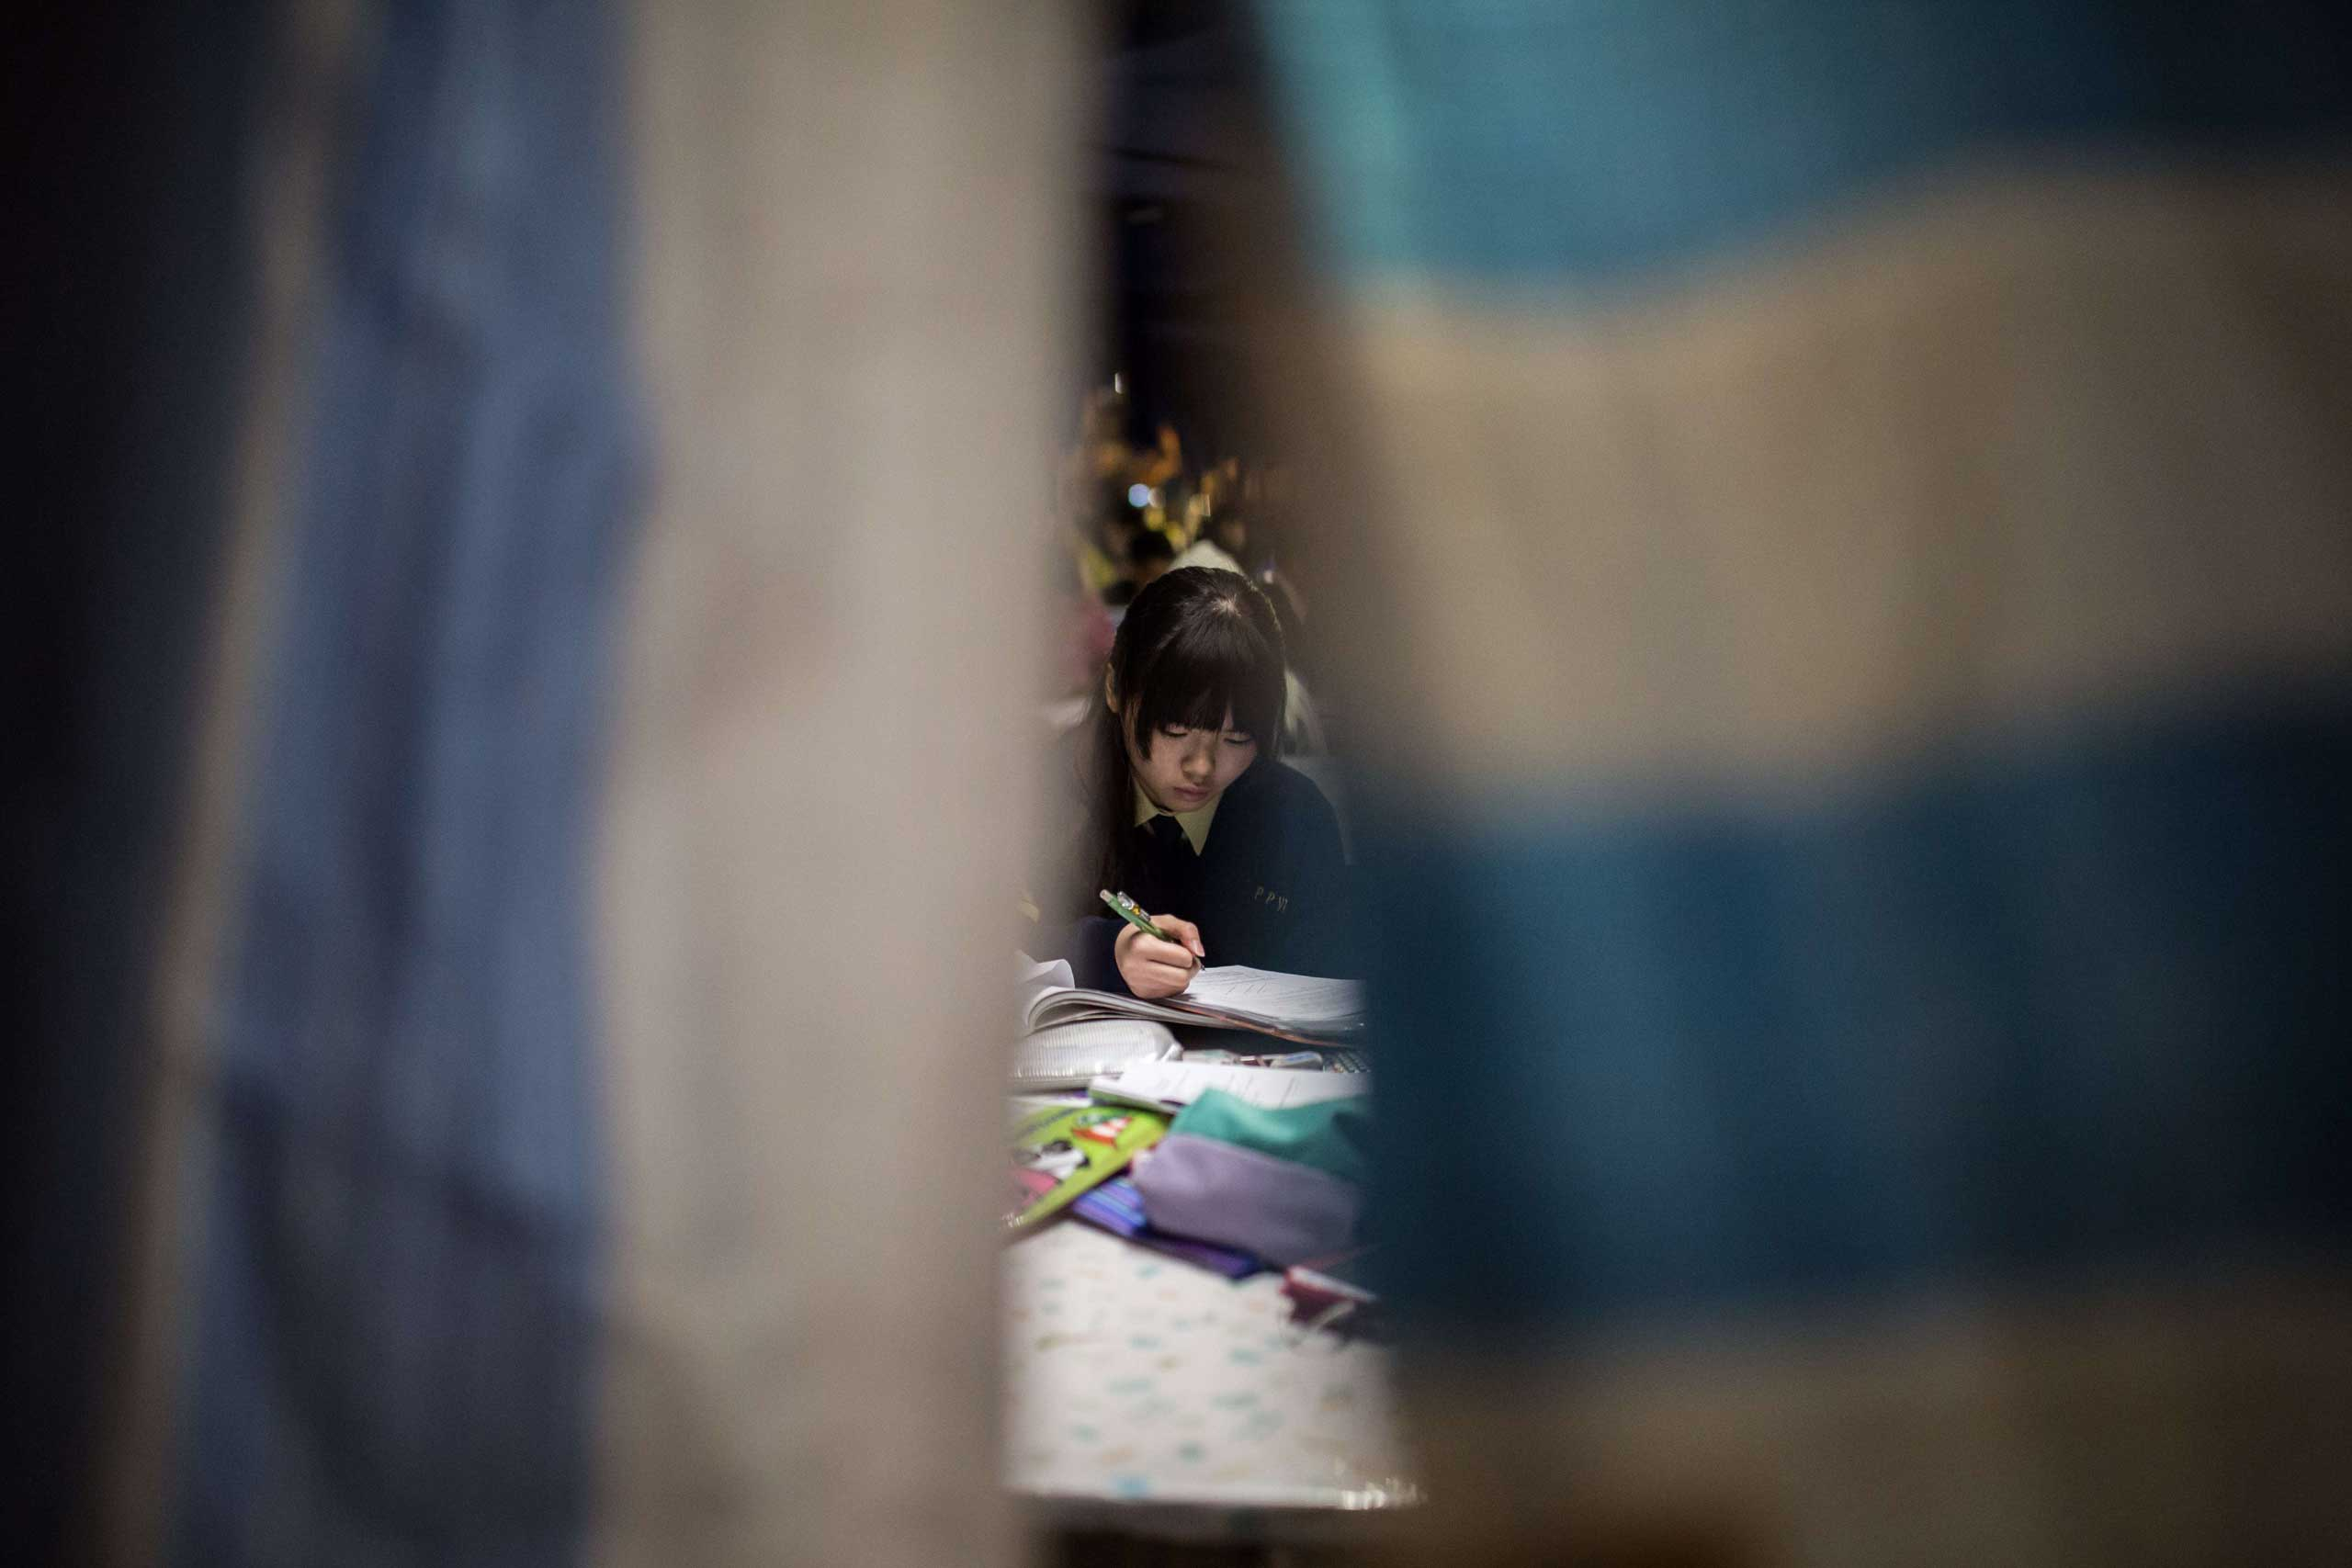 Dec. 1, 2014. A young student studies in a makeshift classroom set up on a main road at a major pro-democracy protest site in the Admiralty district of Hong Kong.